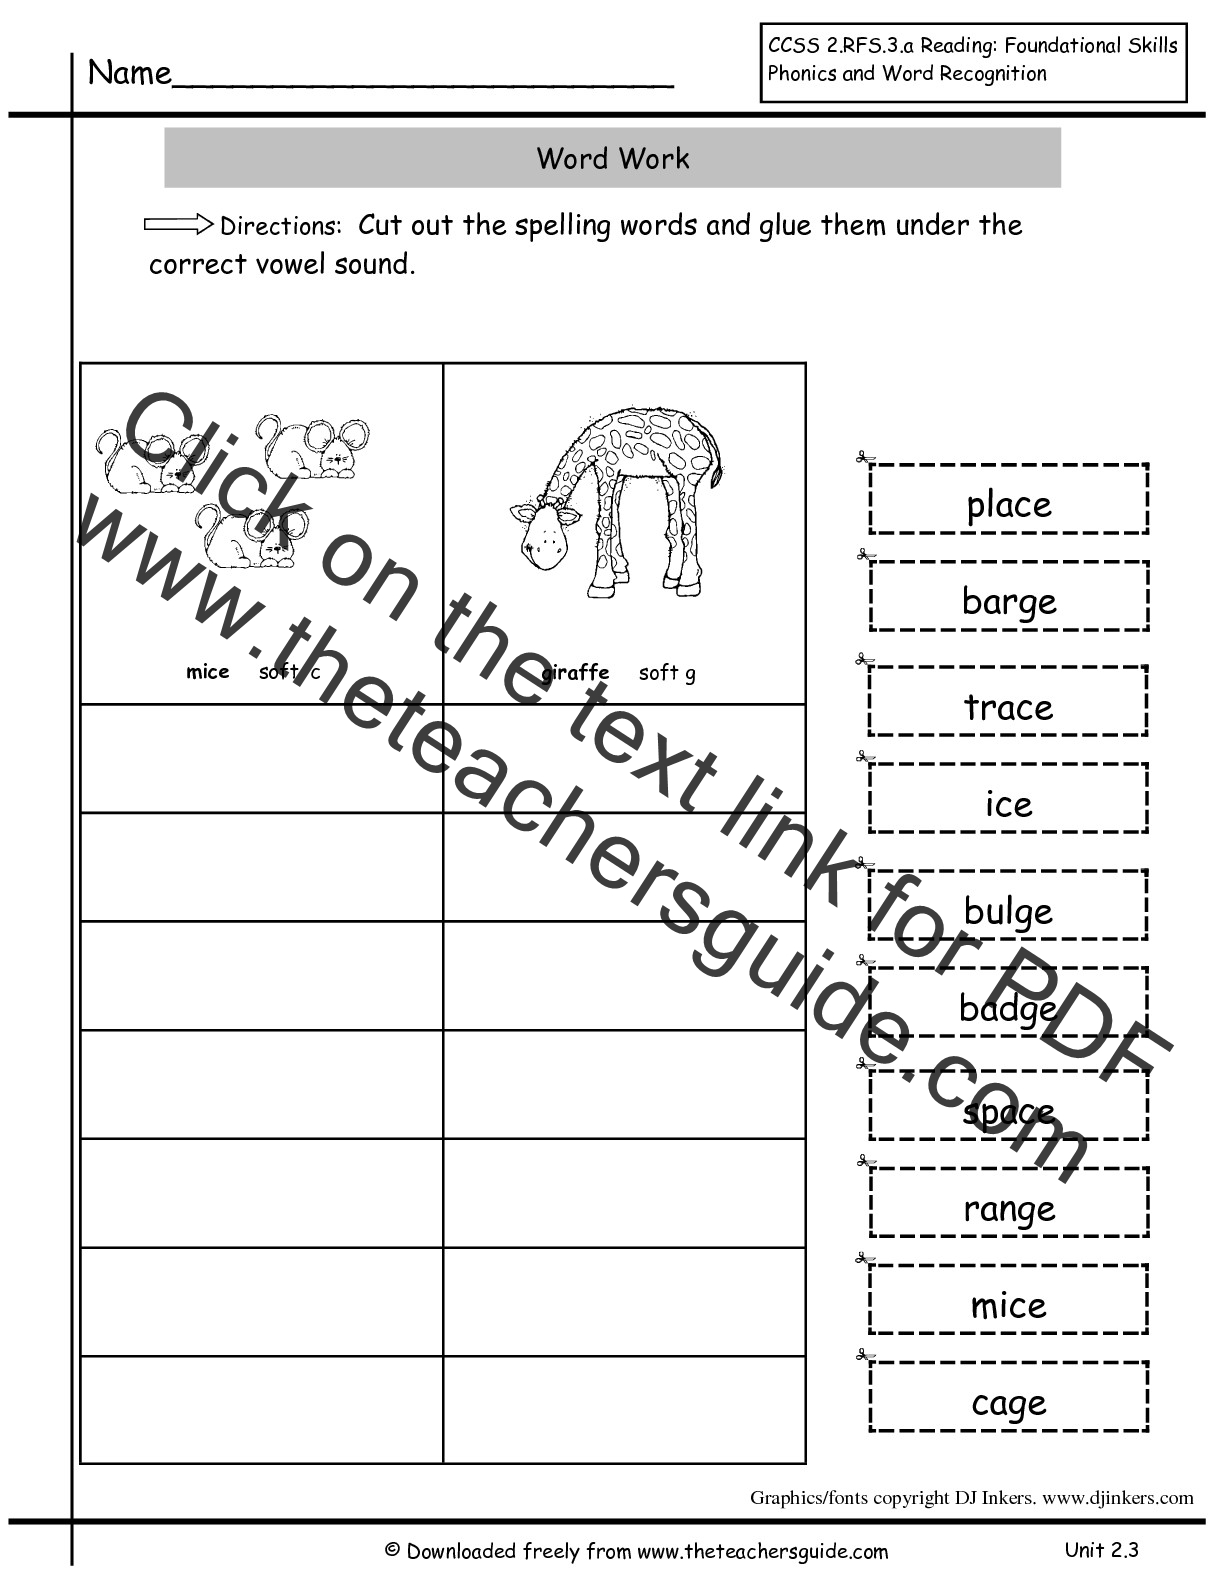 Printables Number Sentence Worksheets 2nd Grade number sentence worksheets 2nd grade abitlikethis for 2 free download printable on